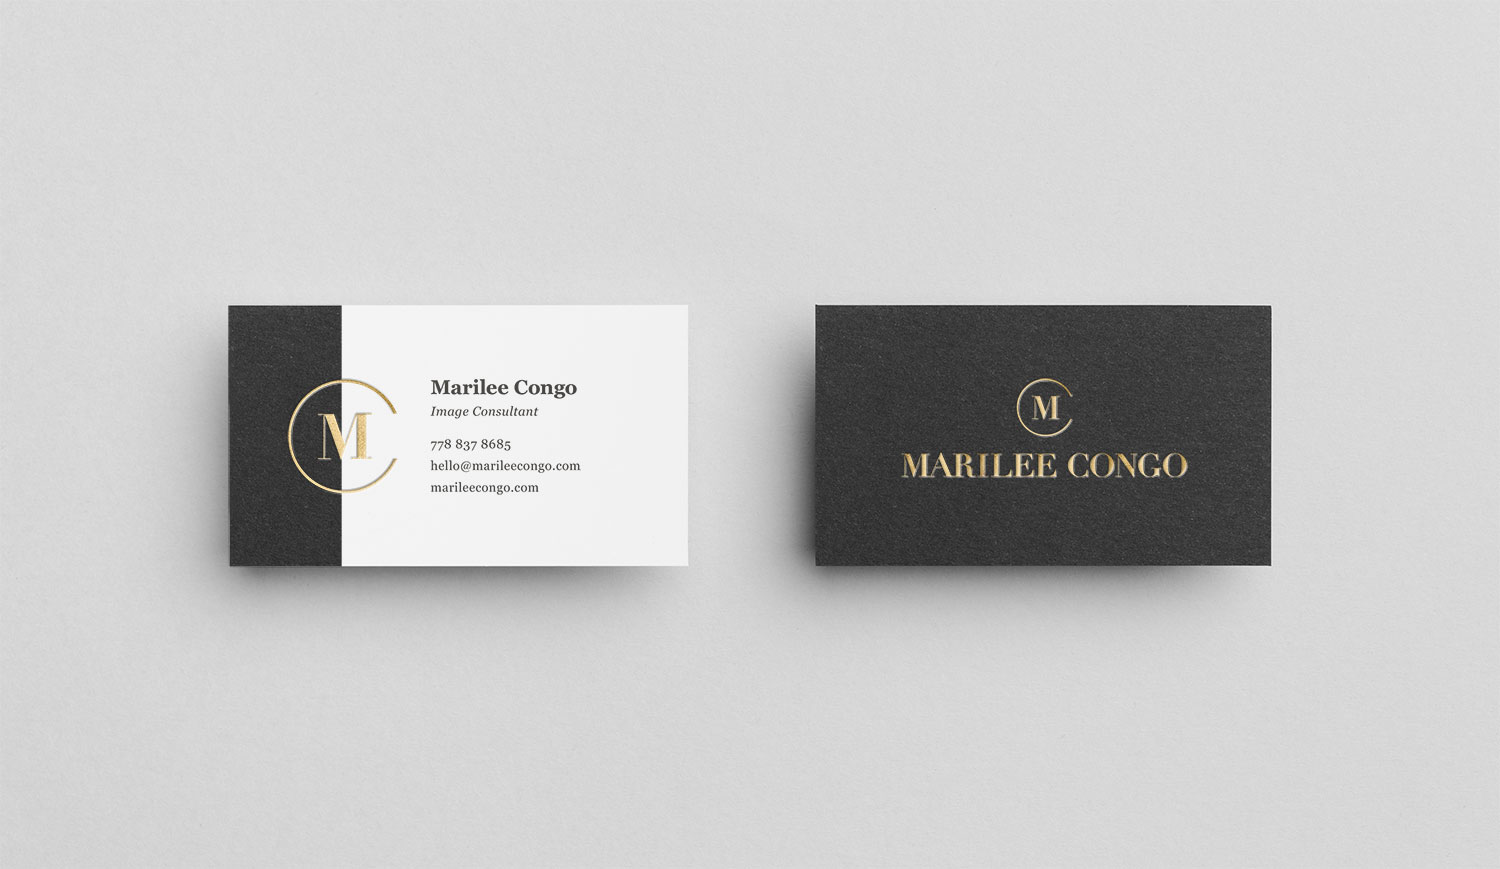 Biz-Cards_front-and-back_side-by-side.jpg